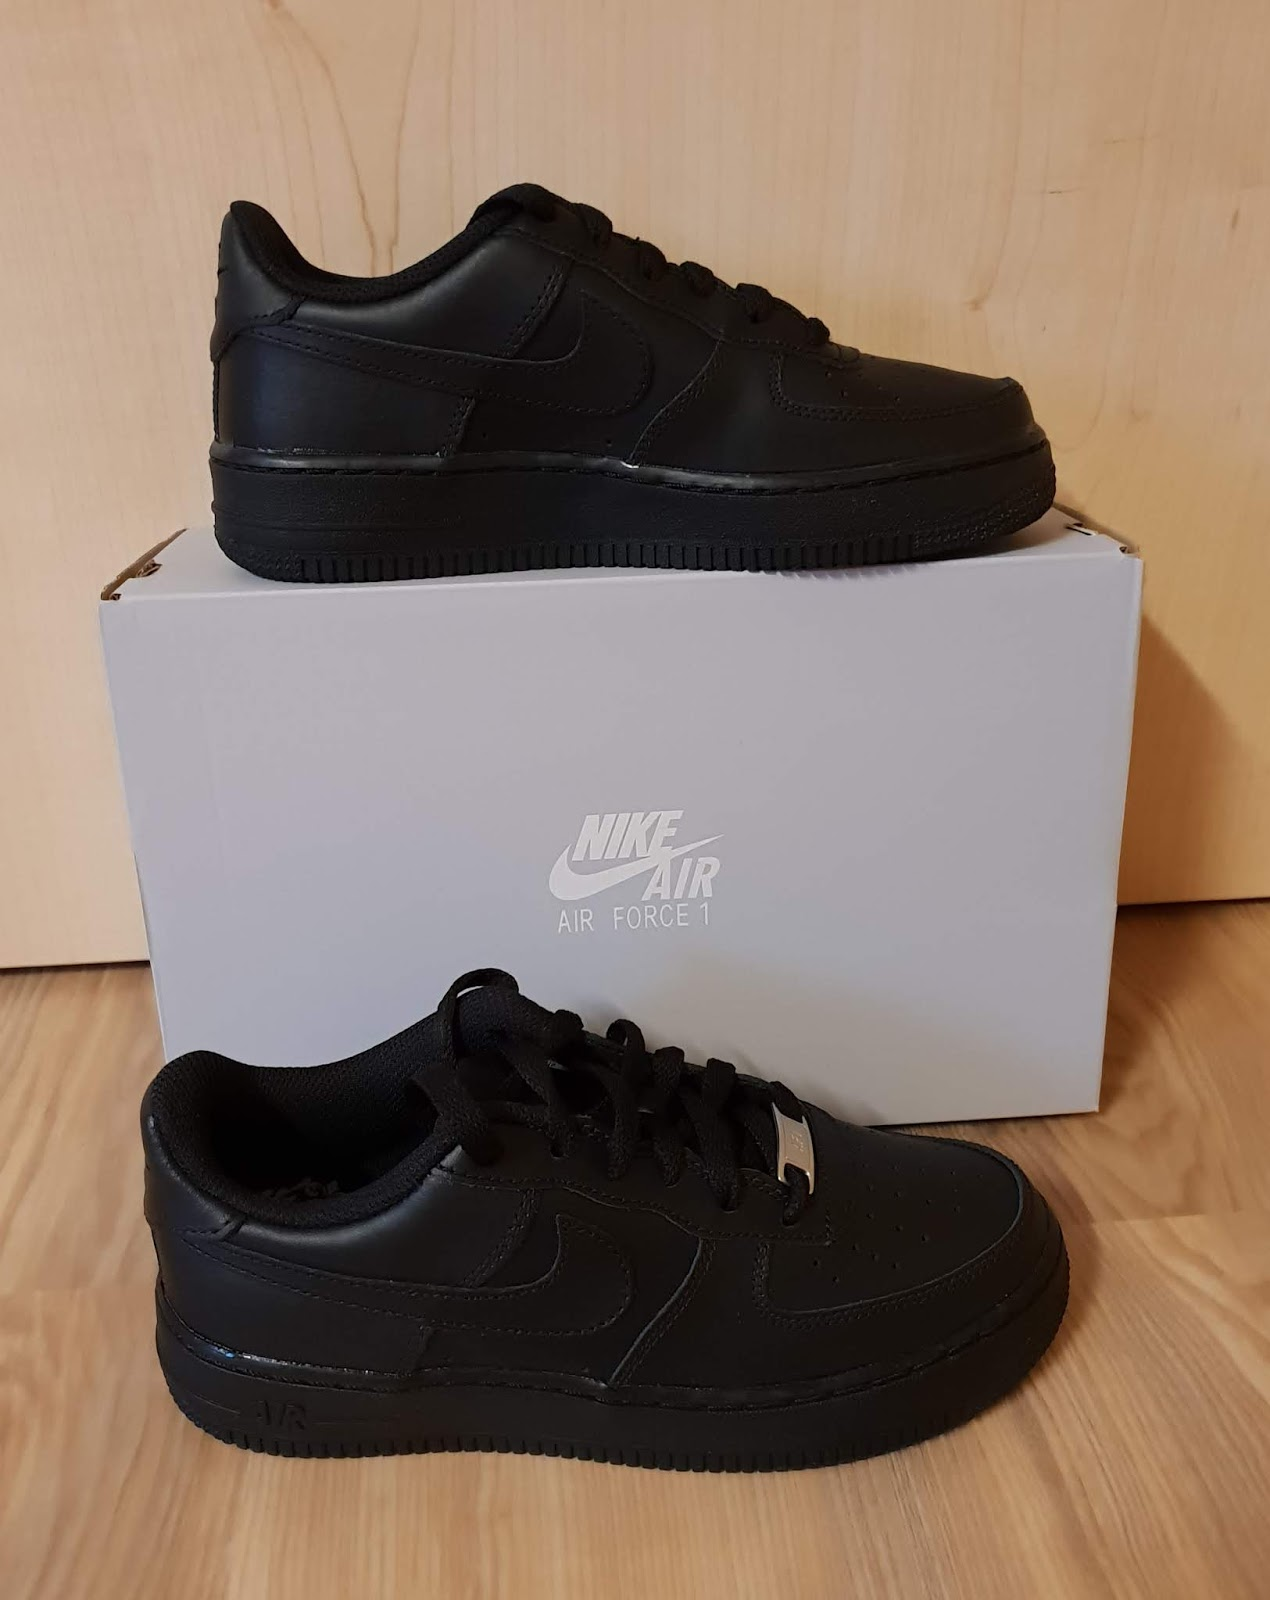 Finde Tolle Air Force 1 Schuhe. Nike CH